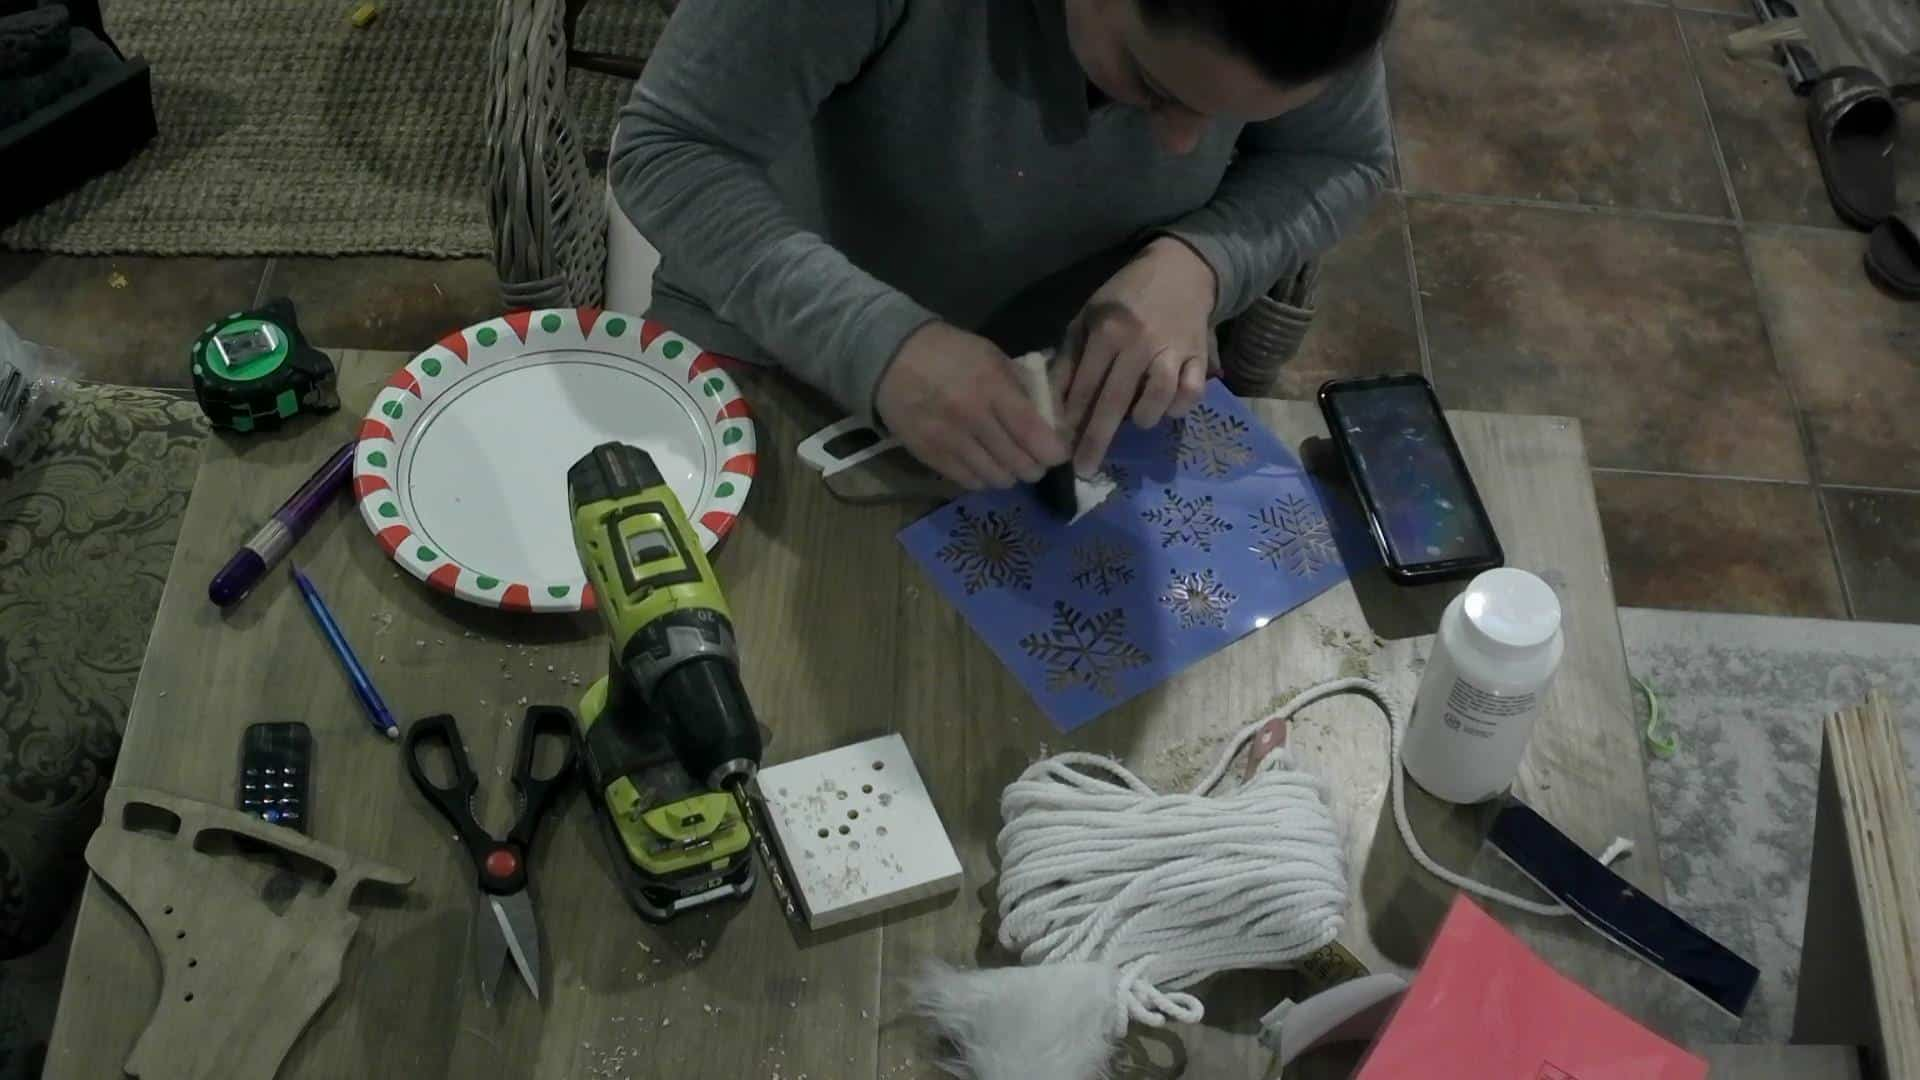 DIY Ice skate decor - painting the snowflakes on the ice skates